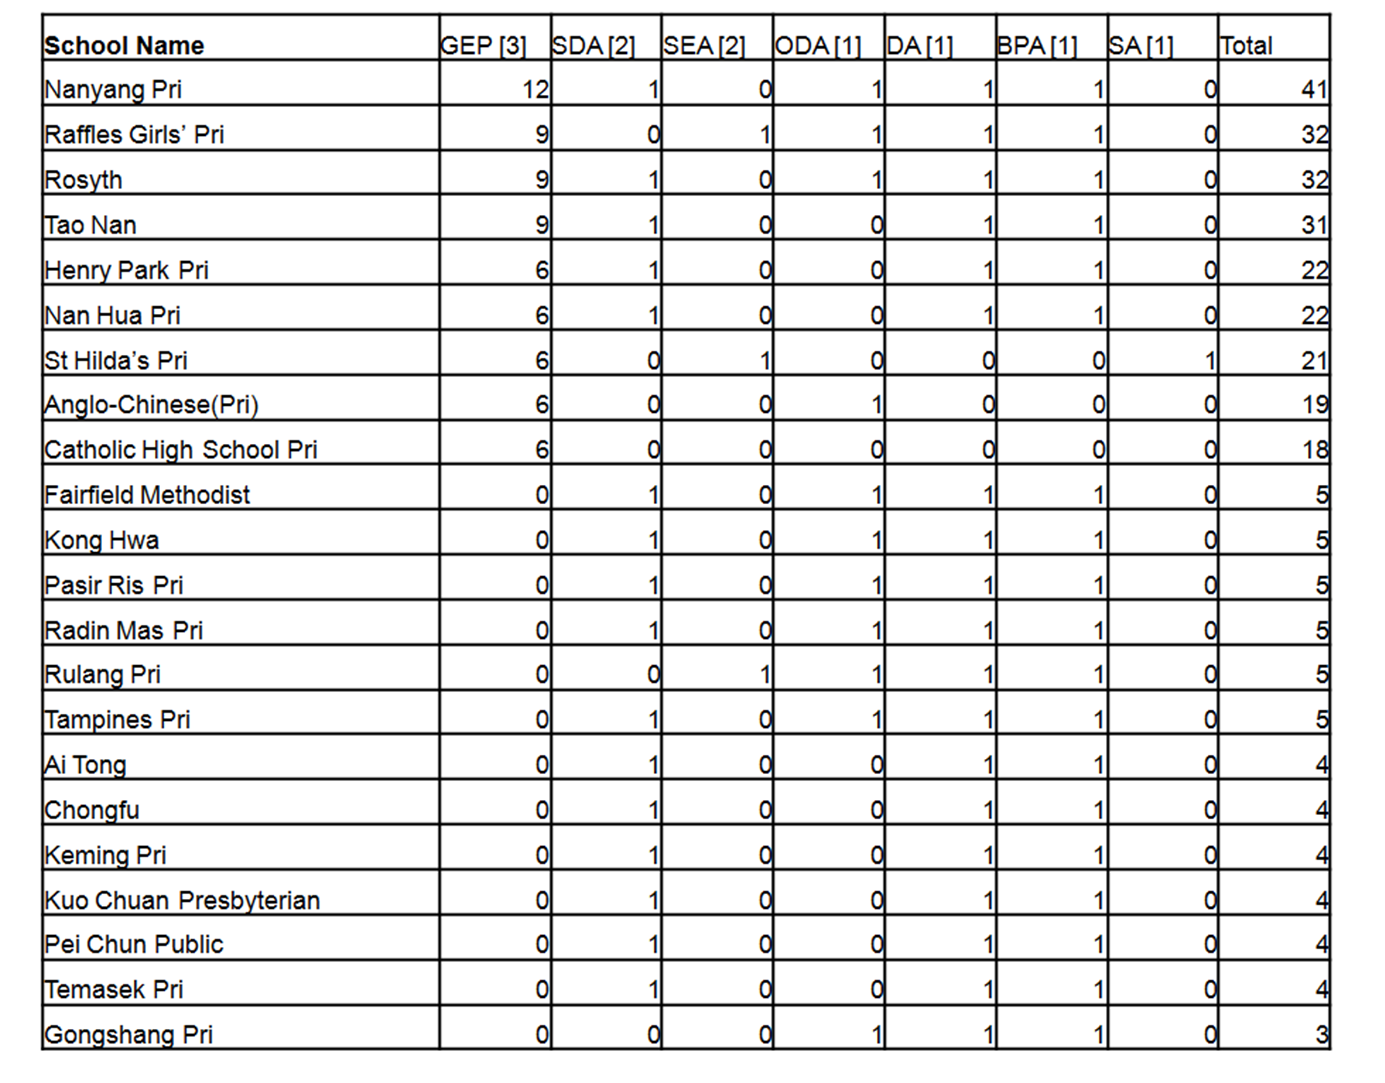 List of 'Top' Primary Schools (2012) based on GEP classes